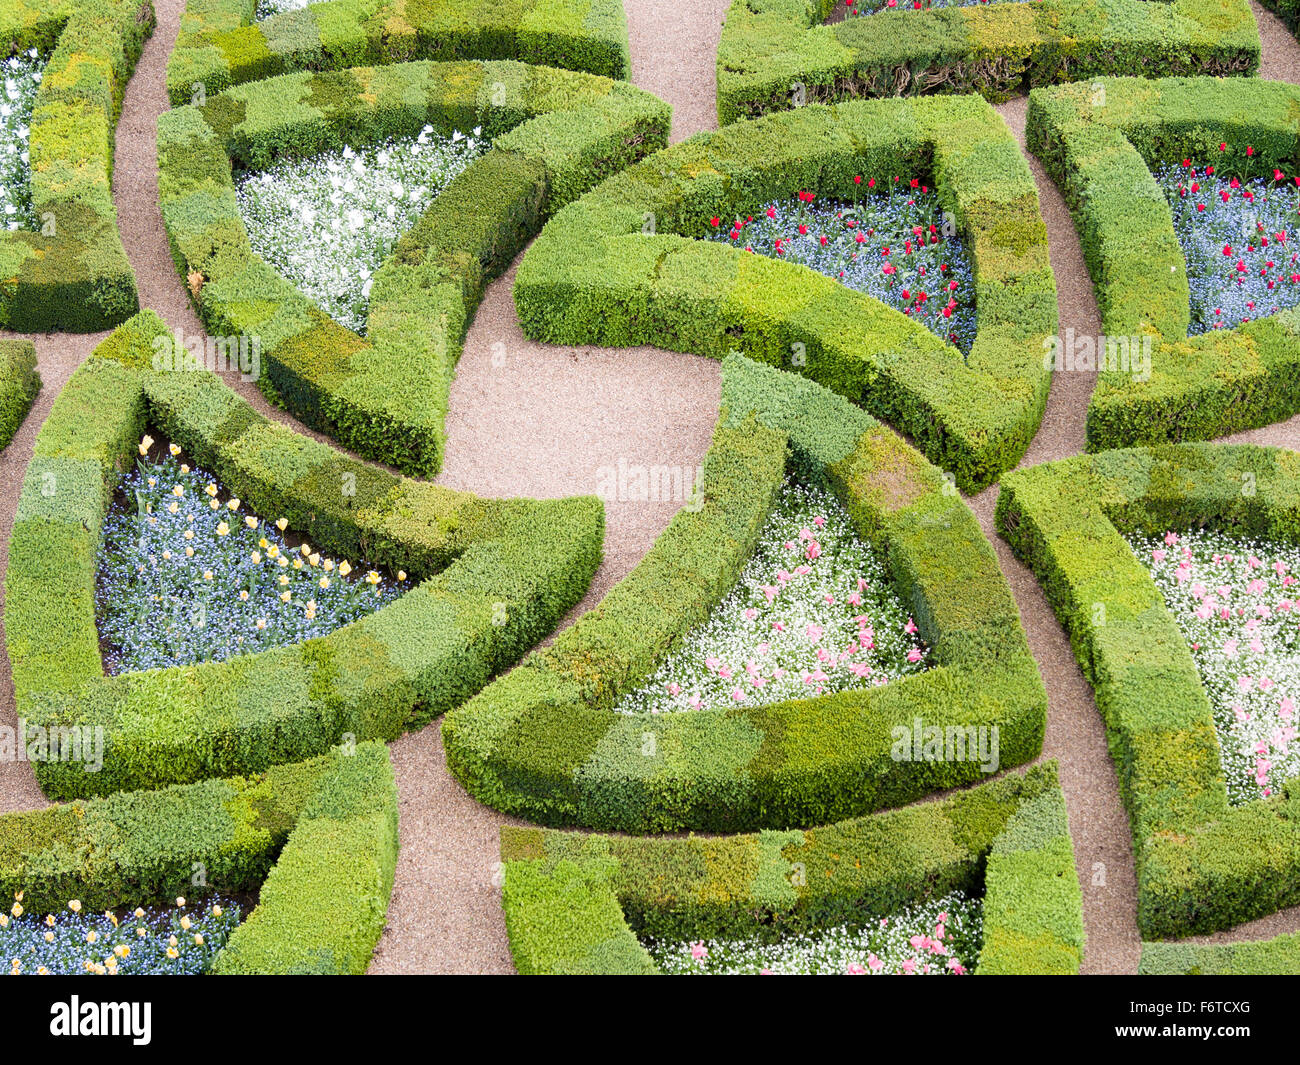 Garden Patterns In Boxwood. Boxwood Hedges Enclose Flower Gardens In Curved  Triangular Shapes In This Detail From The Gardens